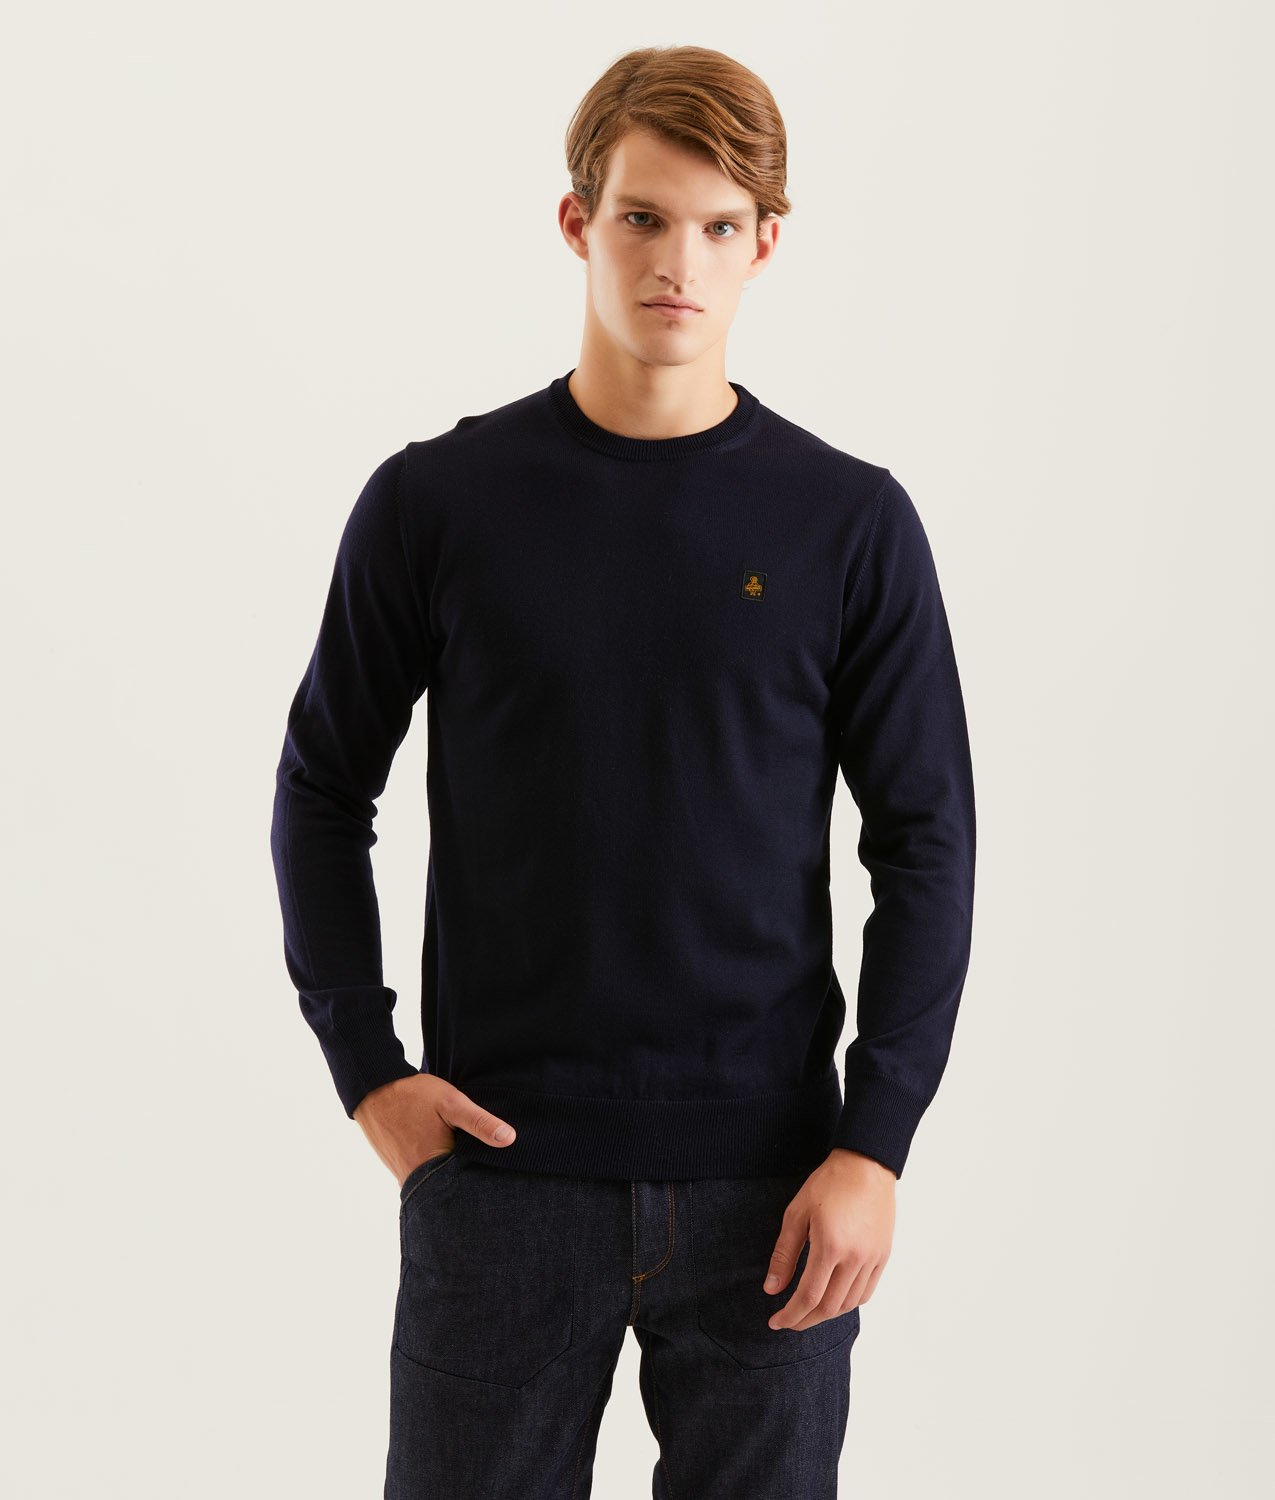 BENNET PULLOVER